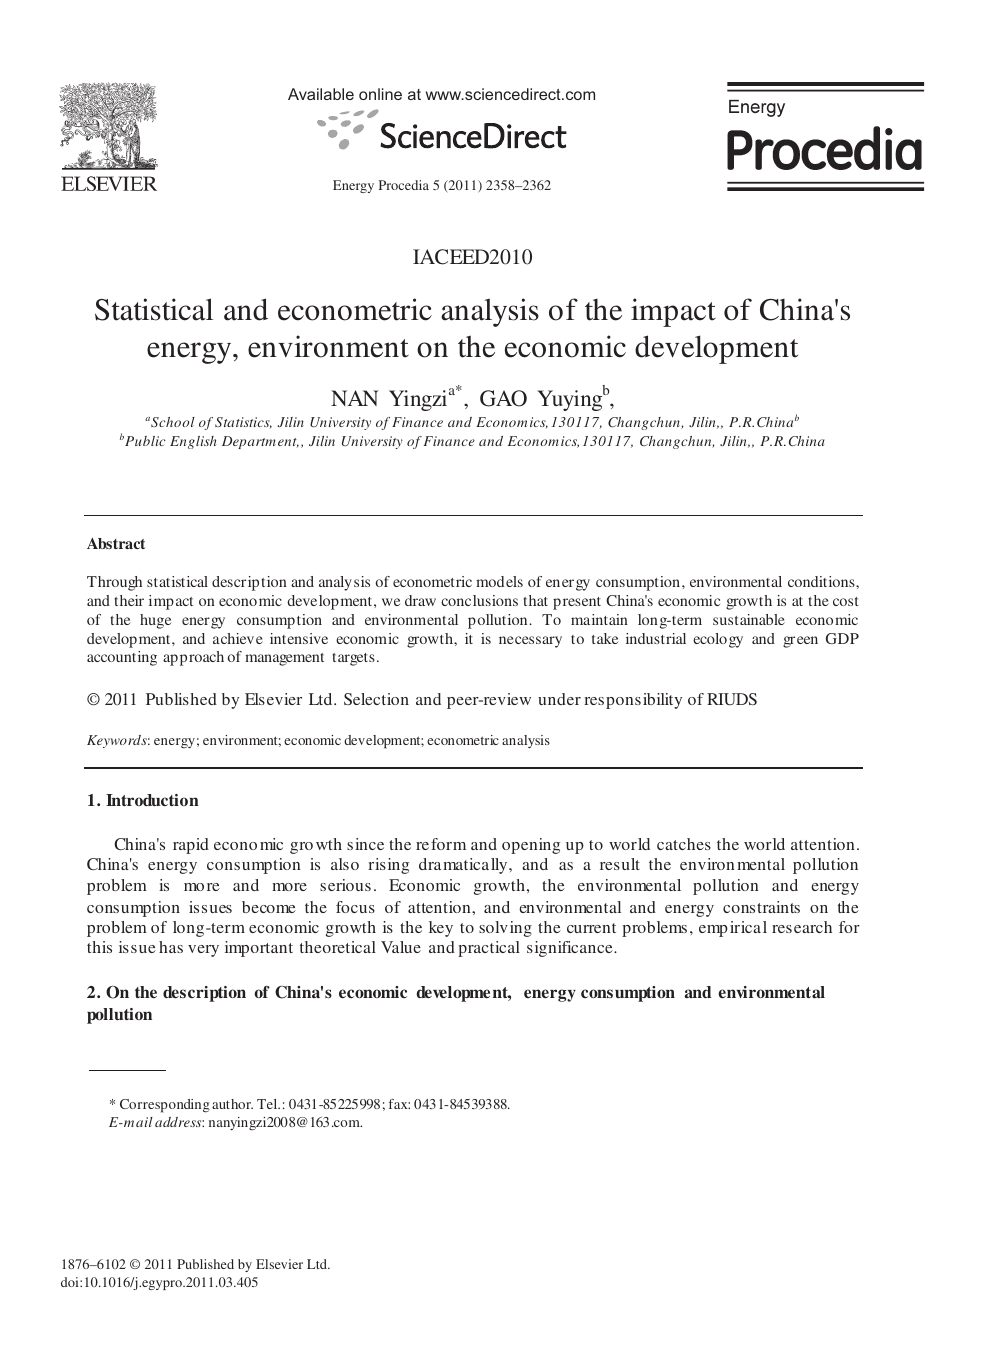 003 Economic Development Research Papers Paper Unusual Growth Local Full